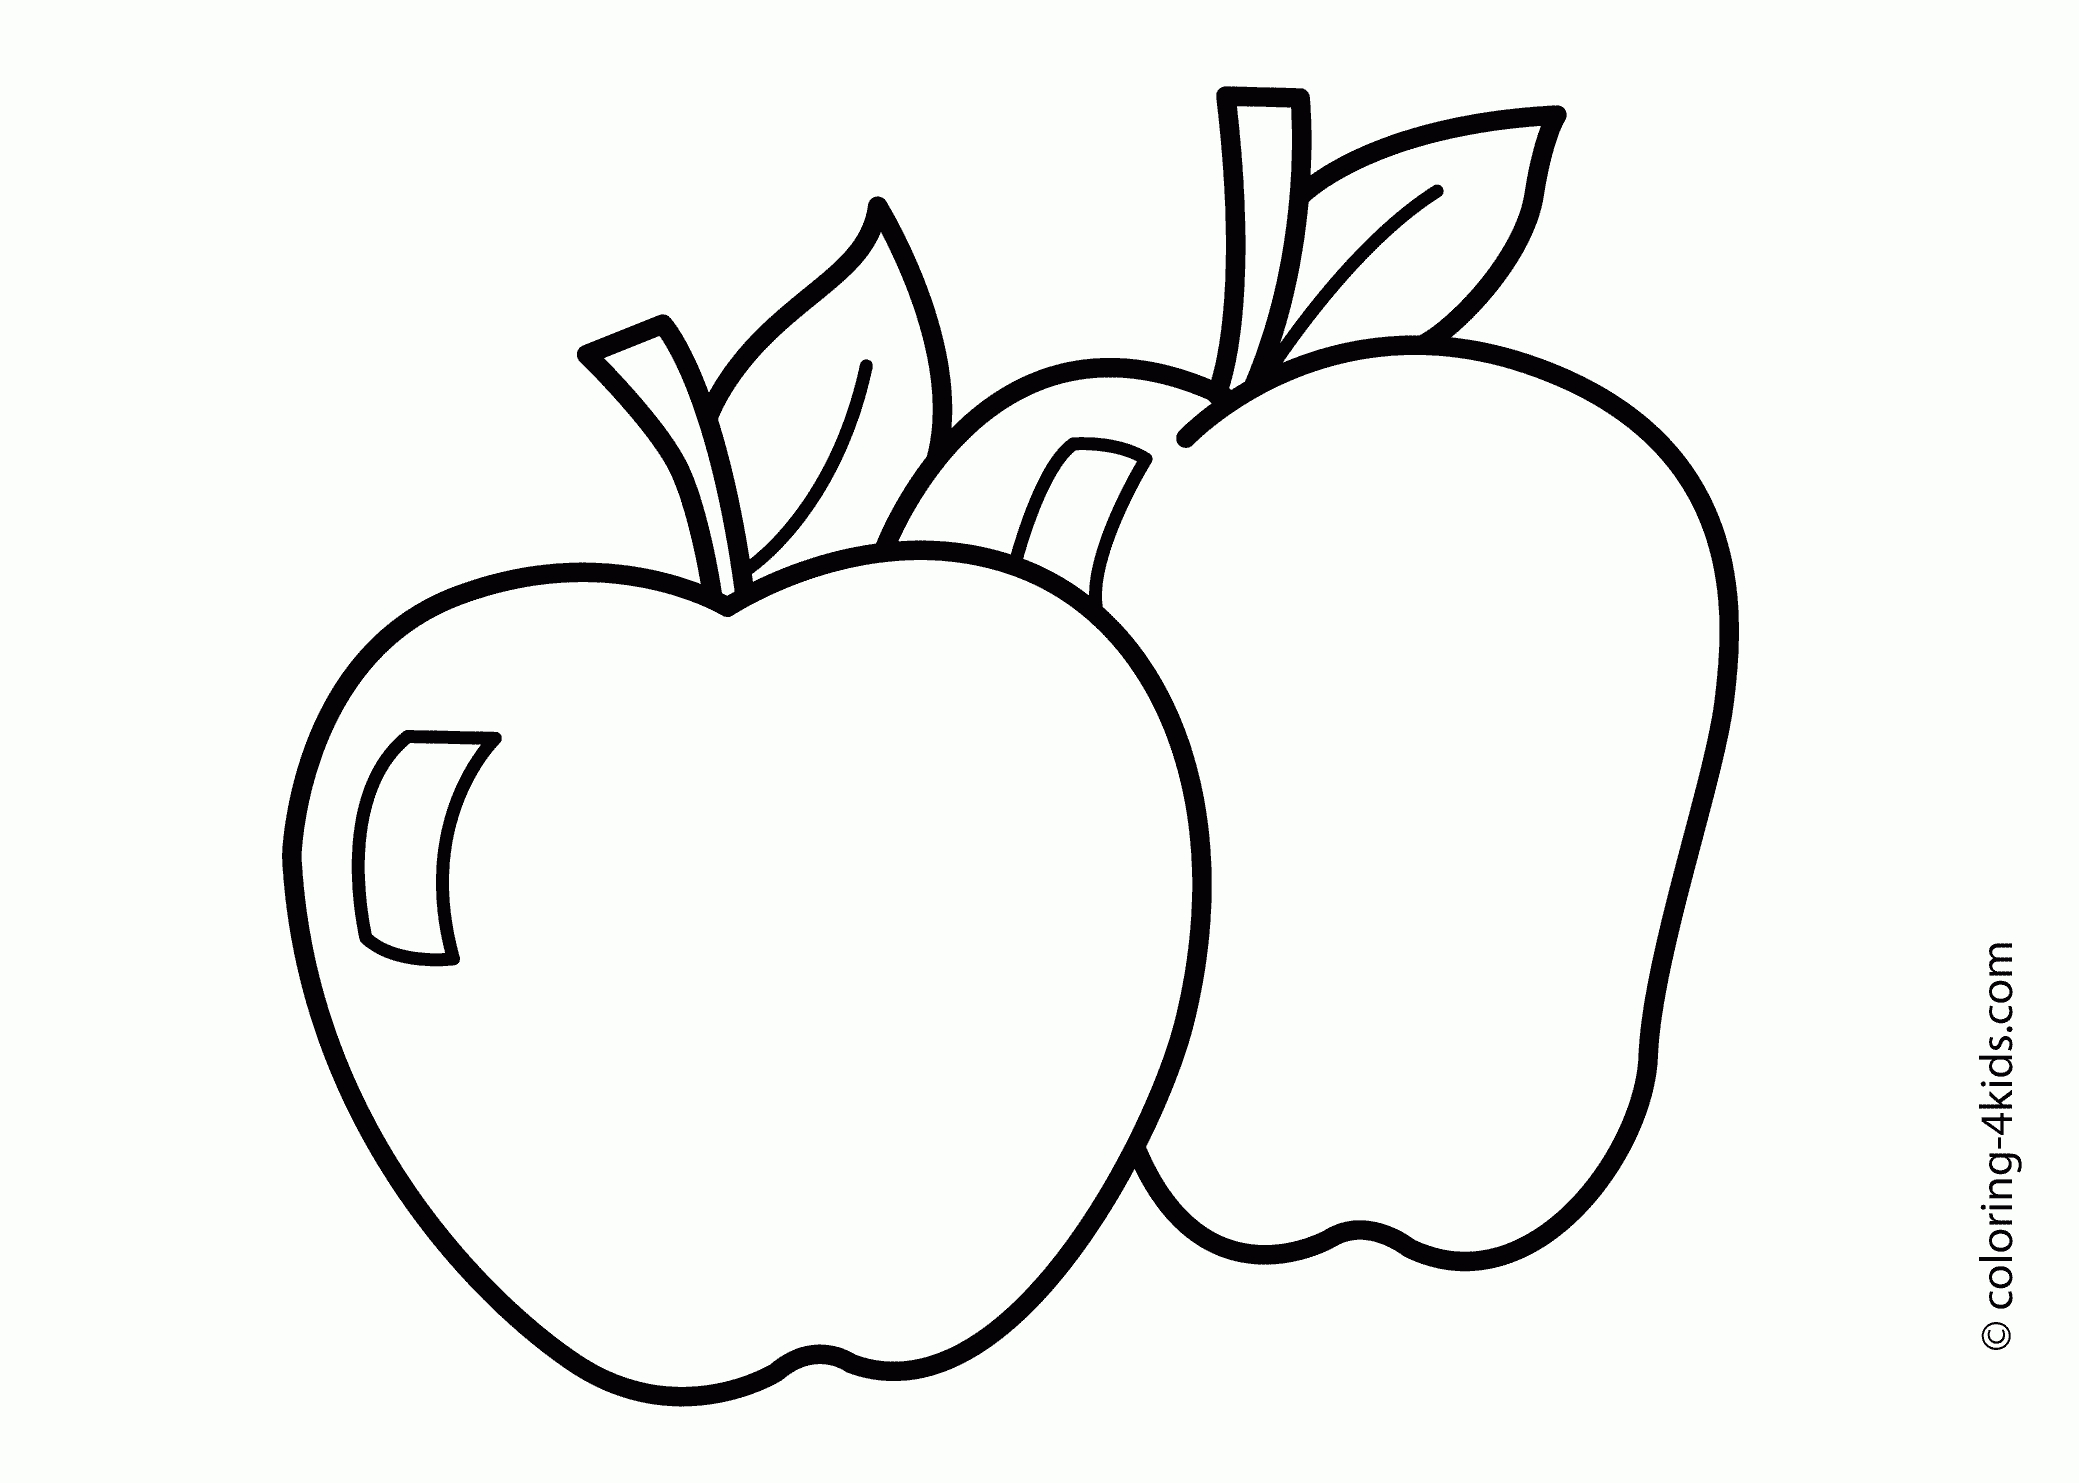 a is for apple coloring page - apple picture to color coloring apple coloring pages for preschoolers